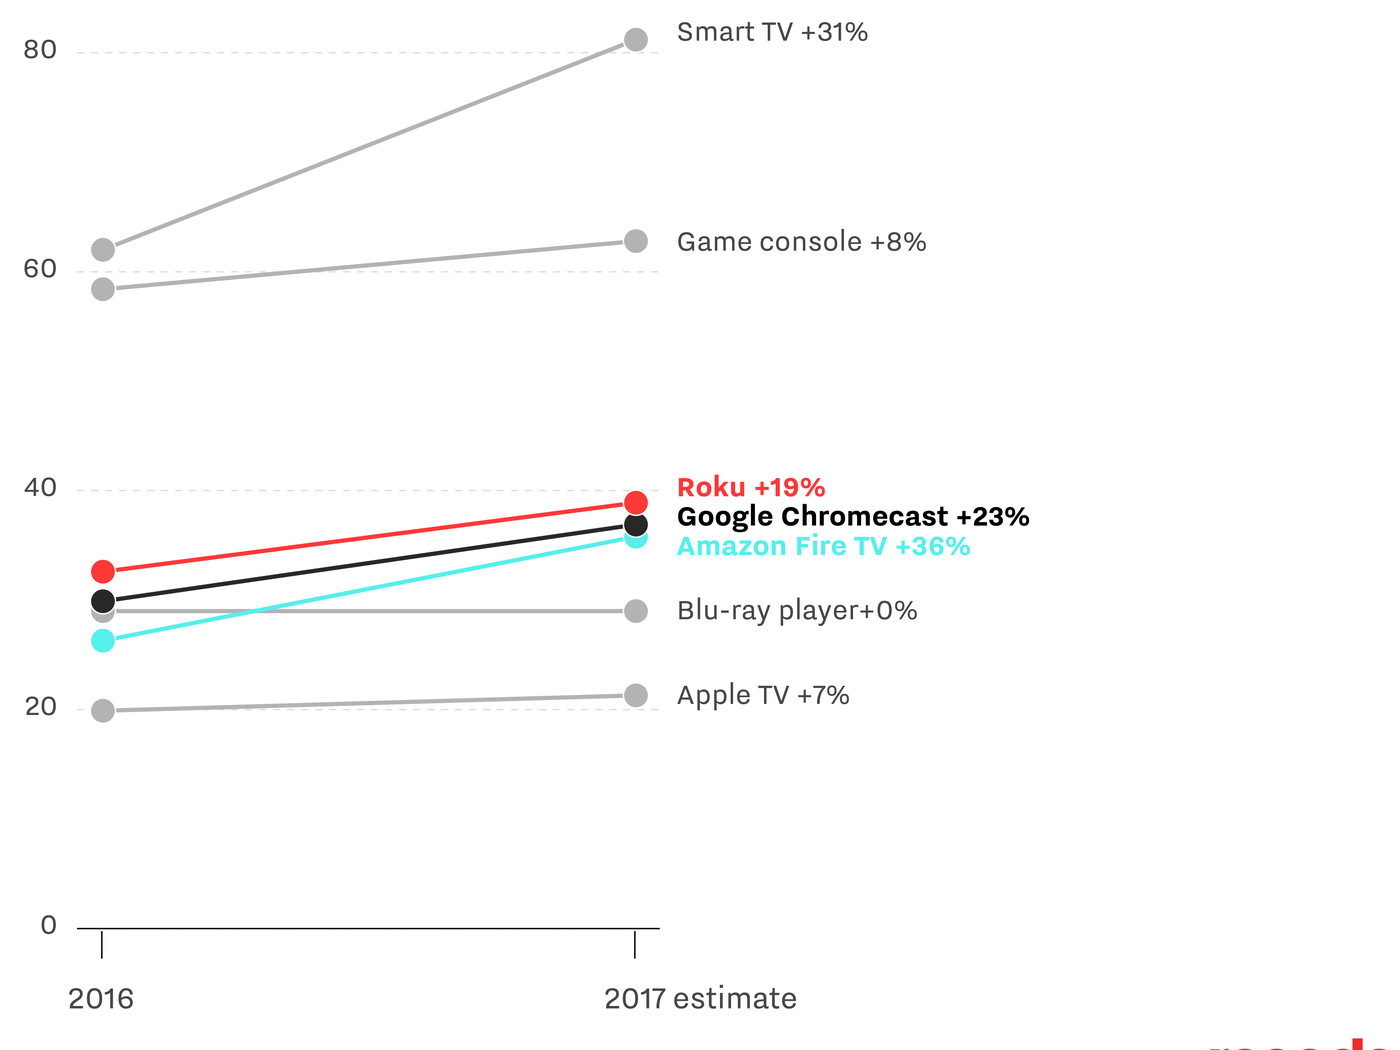 Nearly 40 million Americans use Roku, beating out Google's Chromecast